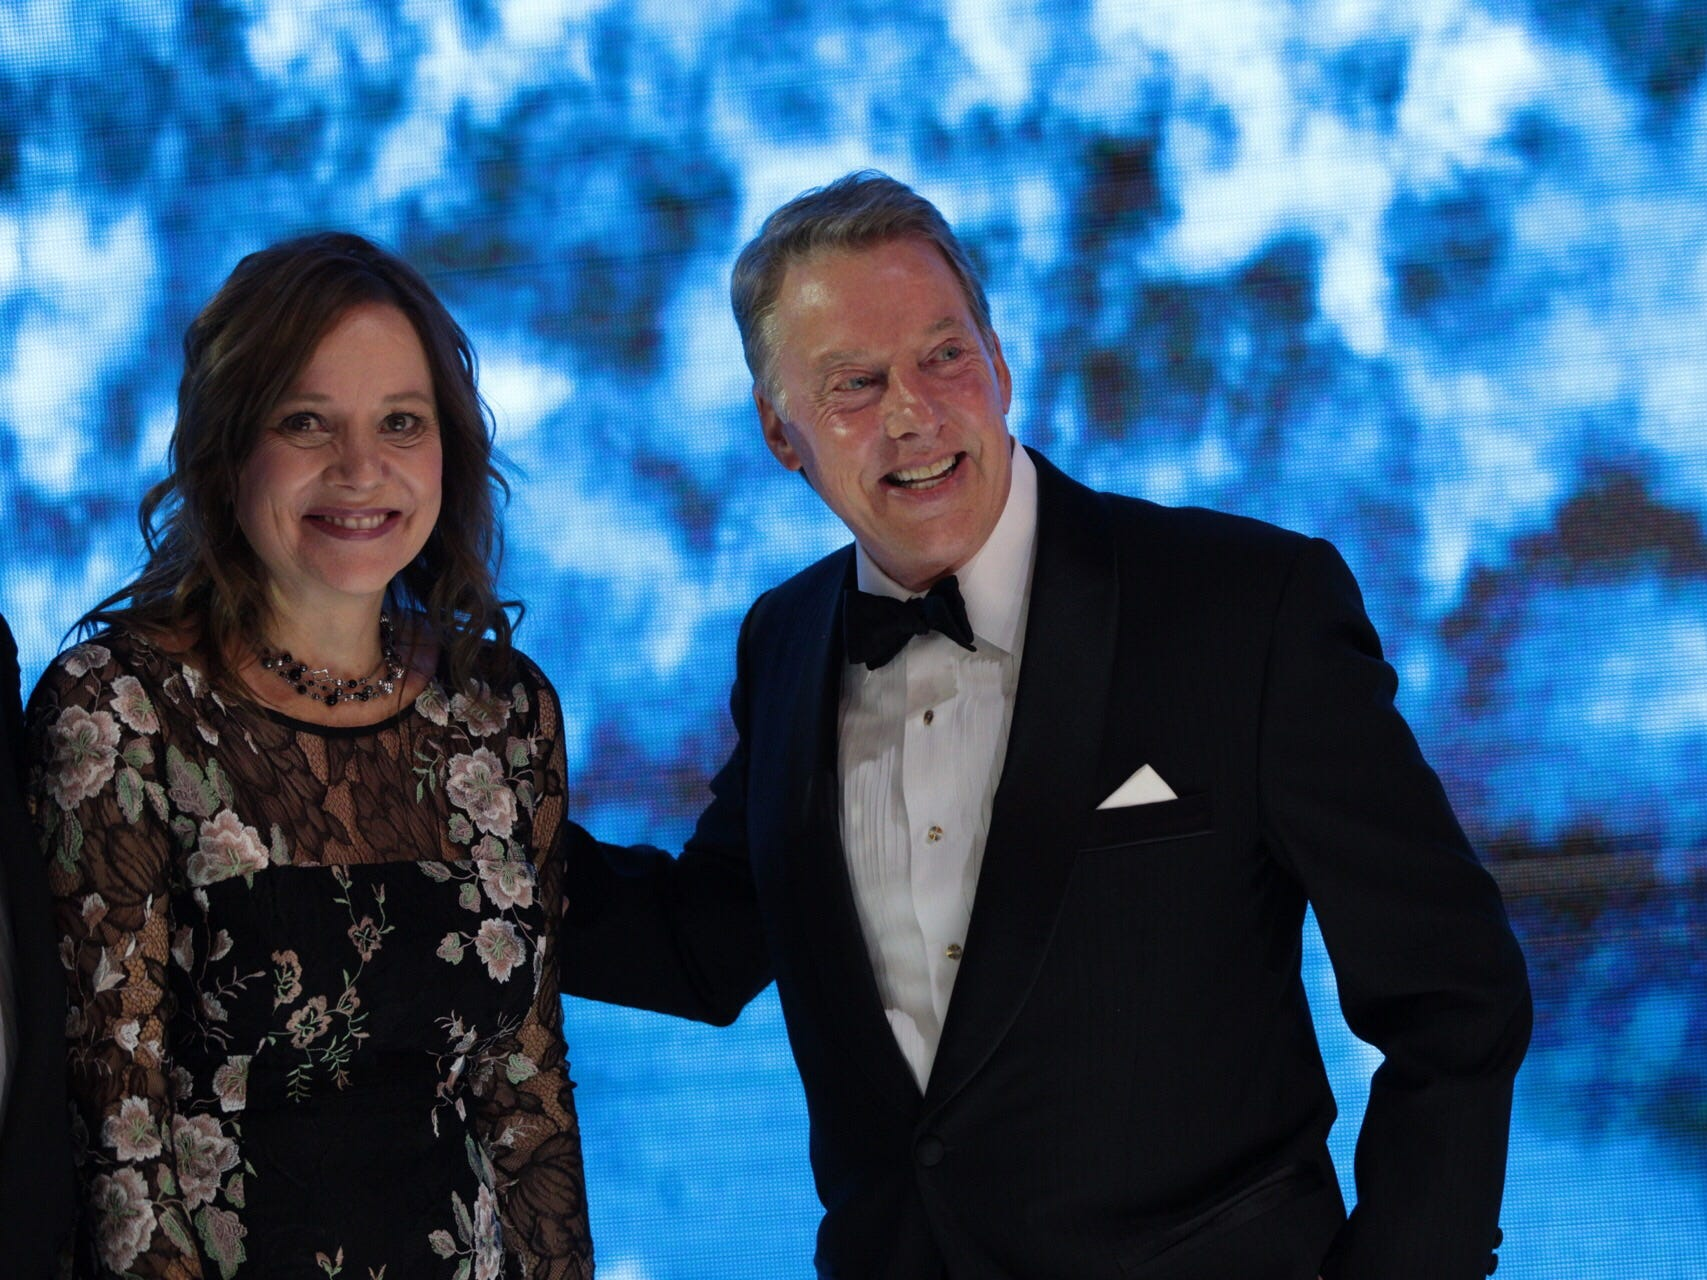 General Motors CEO Mary Barra and Ford Motor Co. Executive Chairman Bill Ford Jr. speak during the 2019 North American International Auto Show Charity Preview at Cobo Center in Detroit on Friday, January 18, 2019.